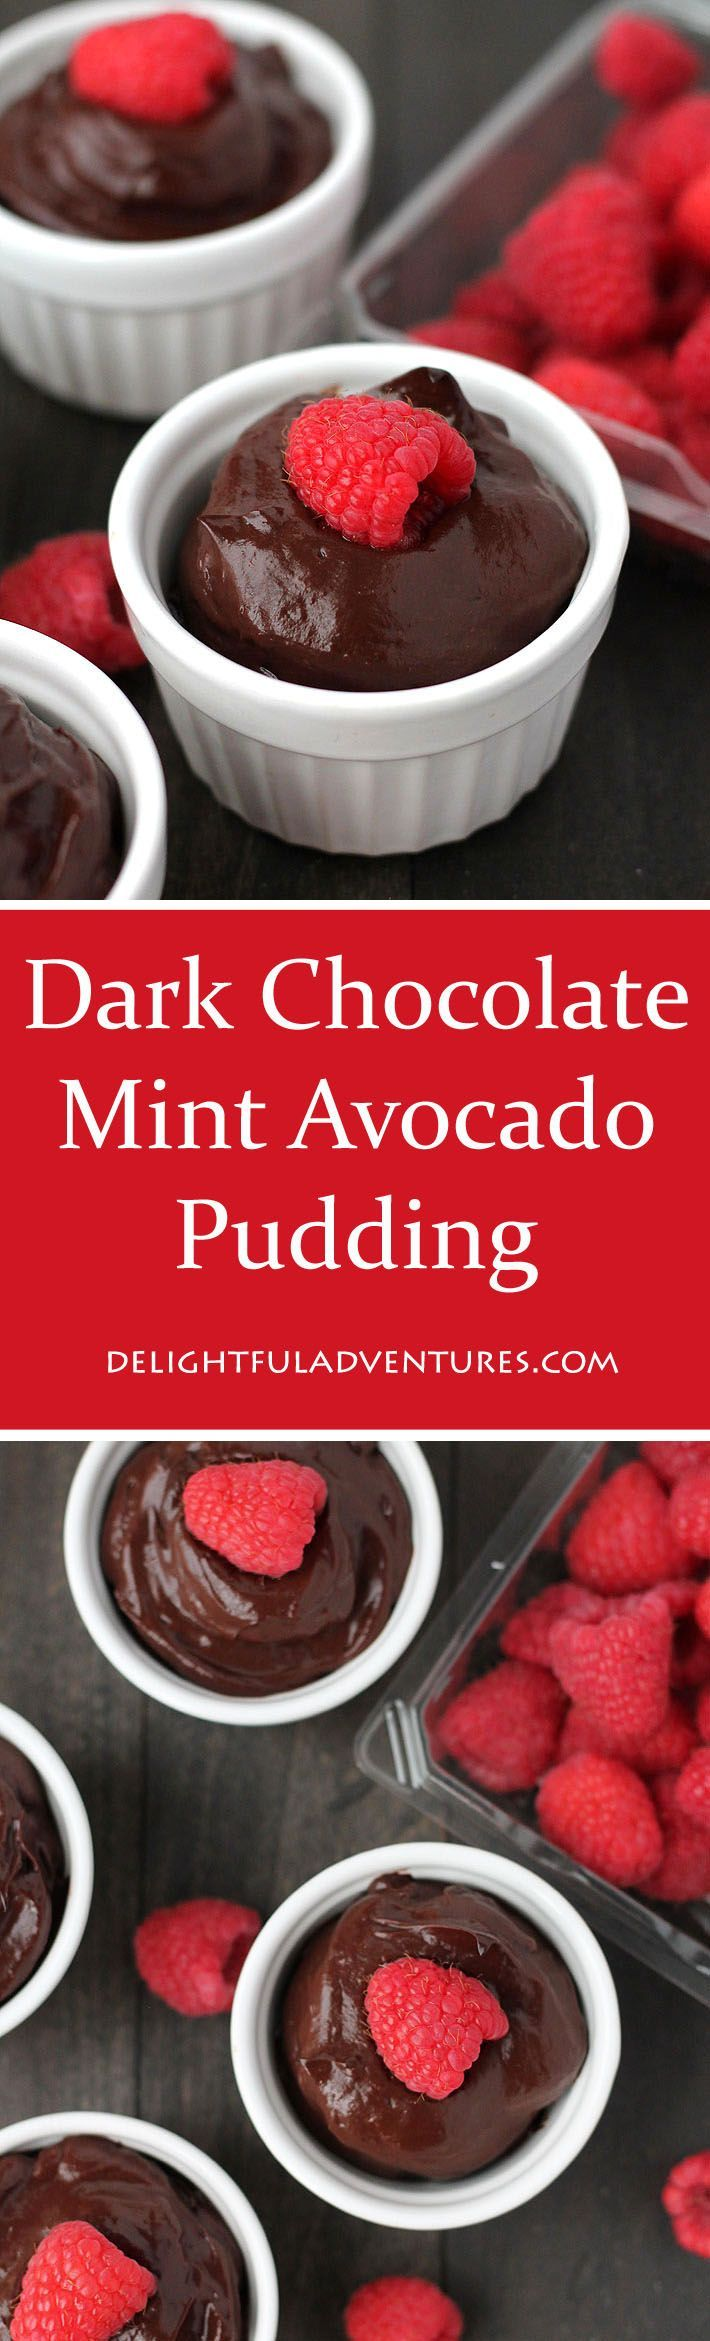 This sweet dark chocolate mint avocado pudding is smooth, chocolaty, and decadent. The best part about it? No one will believe it's made with avocados! via @delighfuladv